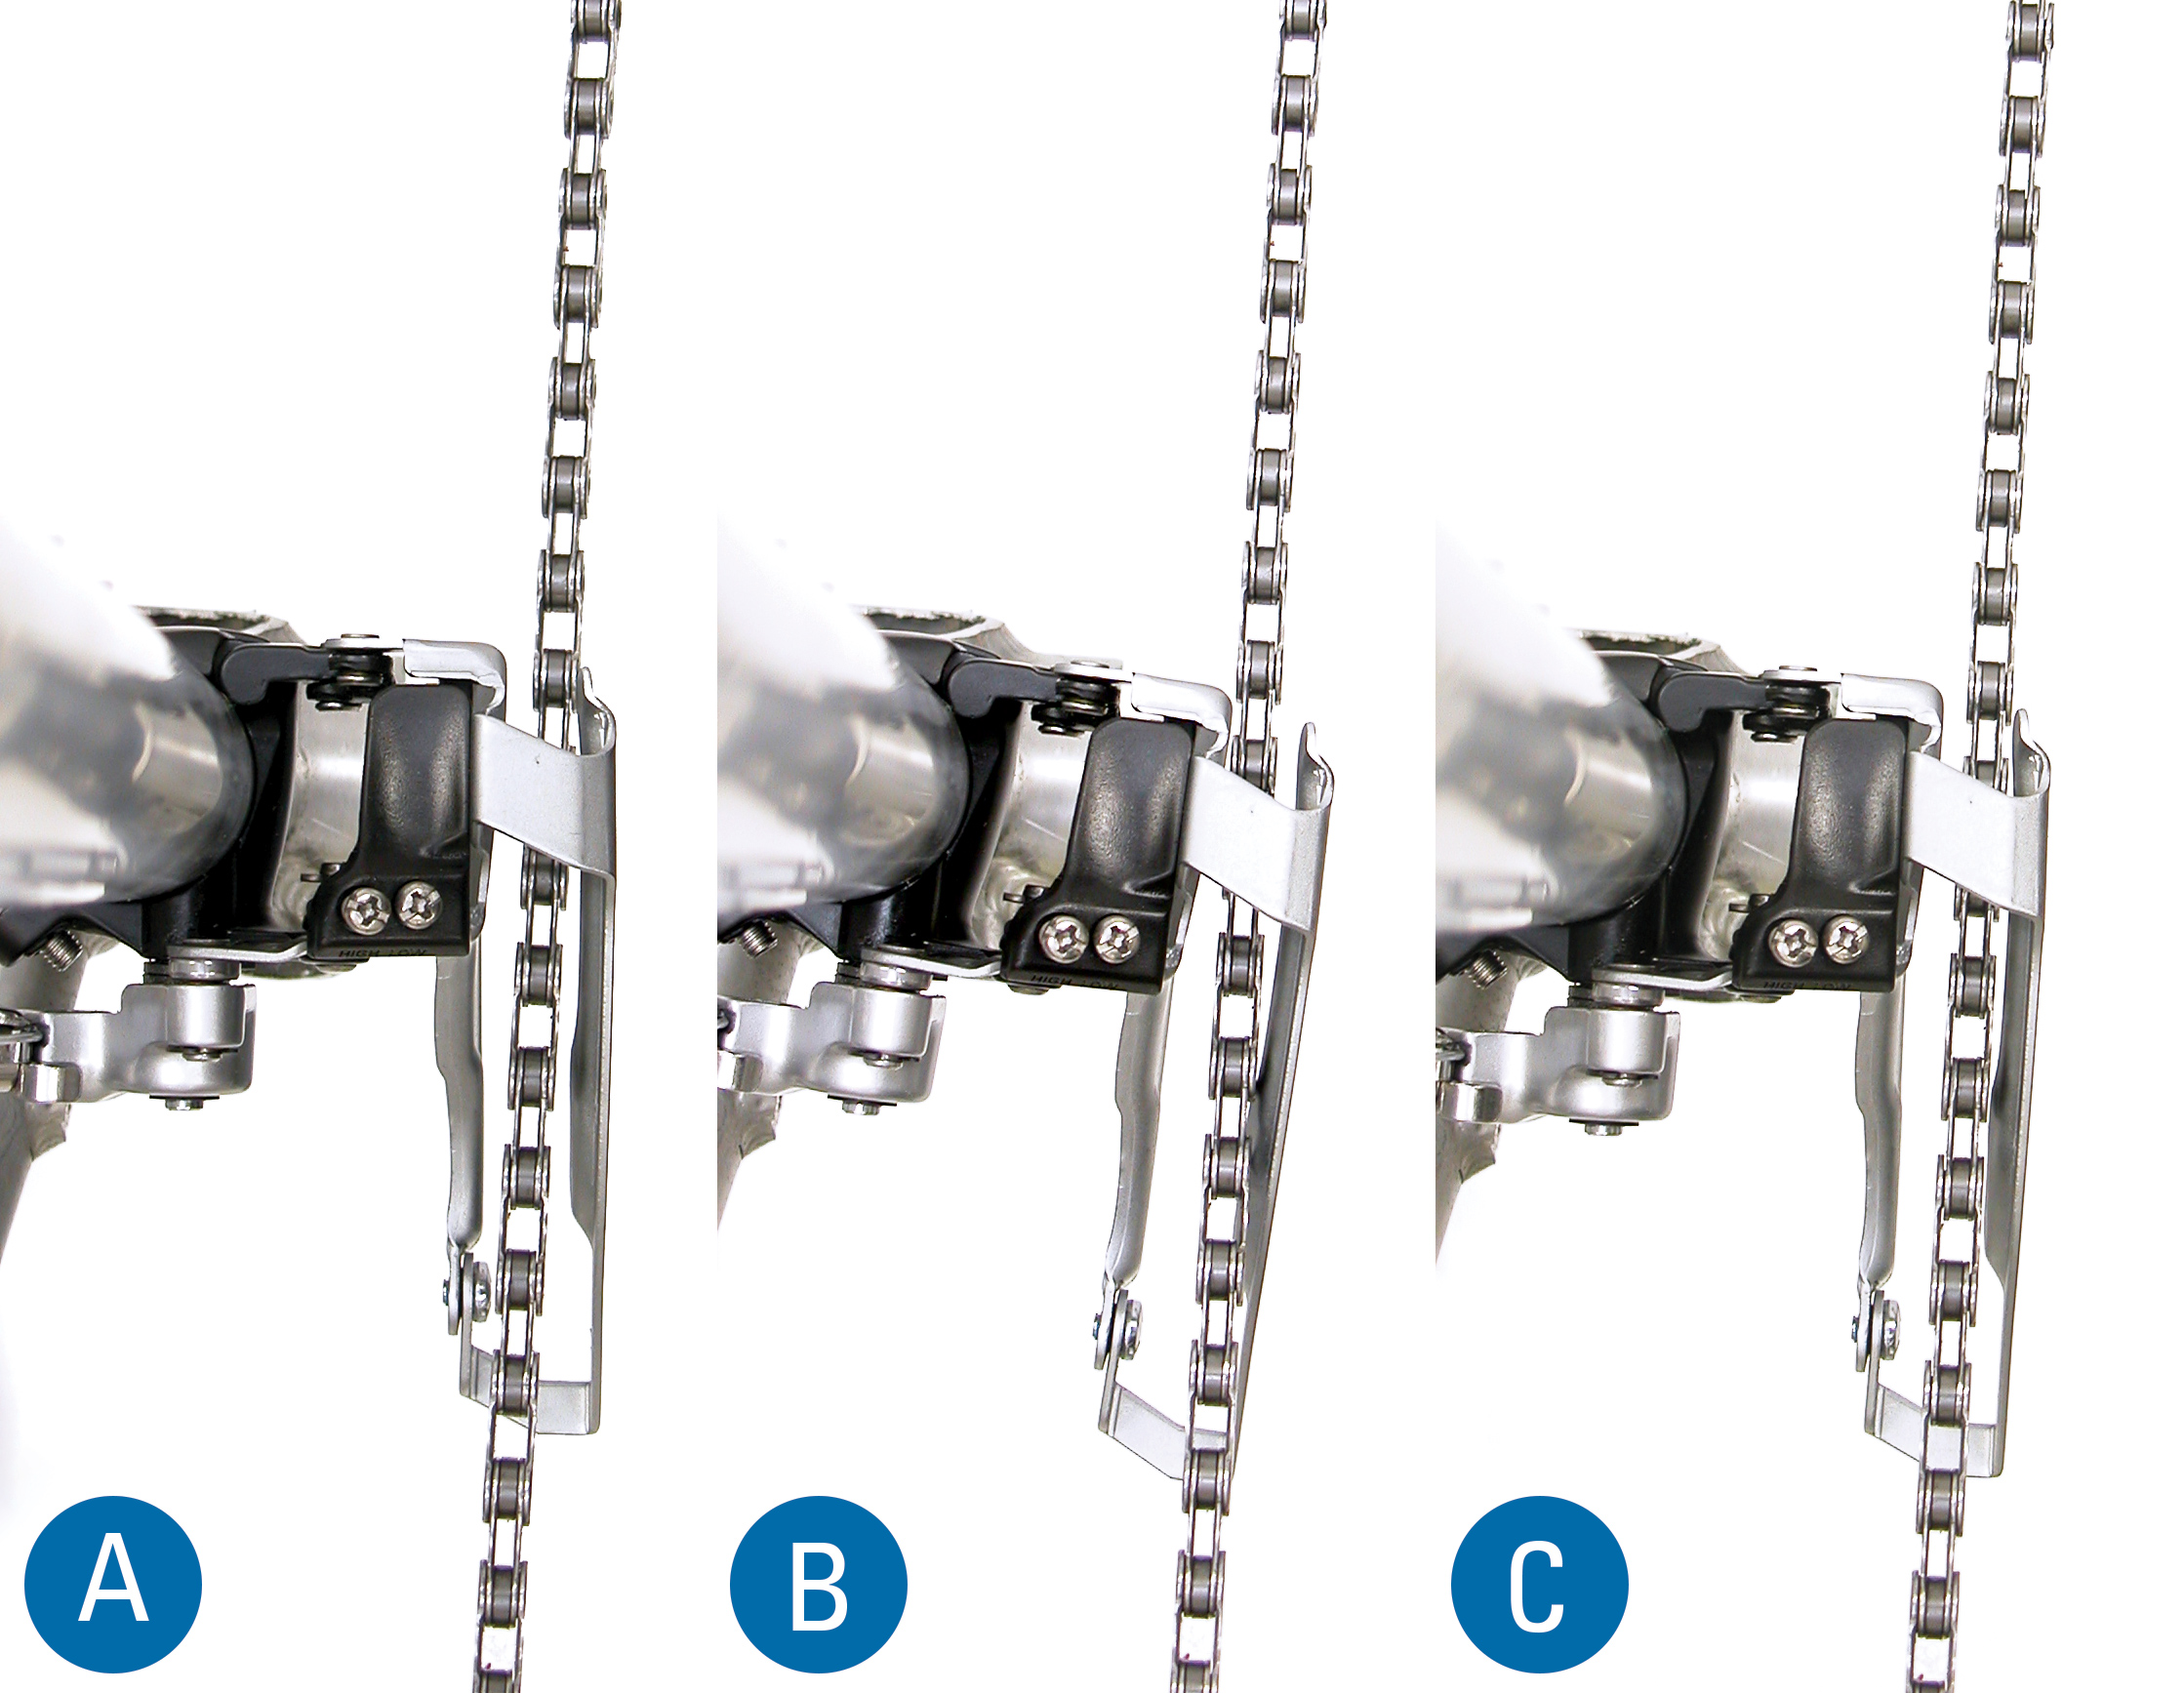 Derailleur A is rotated too far counter-clockwise. Derailleur B is rotated too far clockwise. Notice rear end of cage is inward, toward mid bike plane. Derailleur C is acceptably aligned.